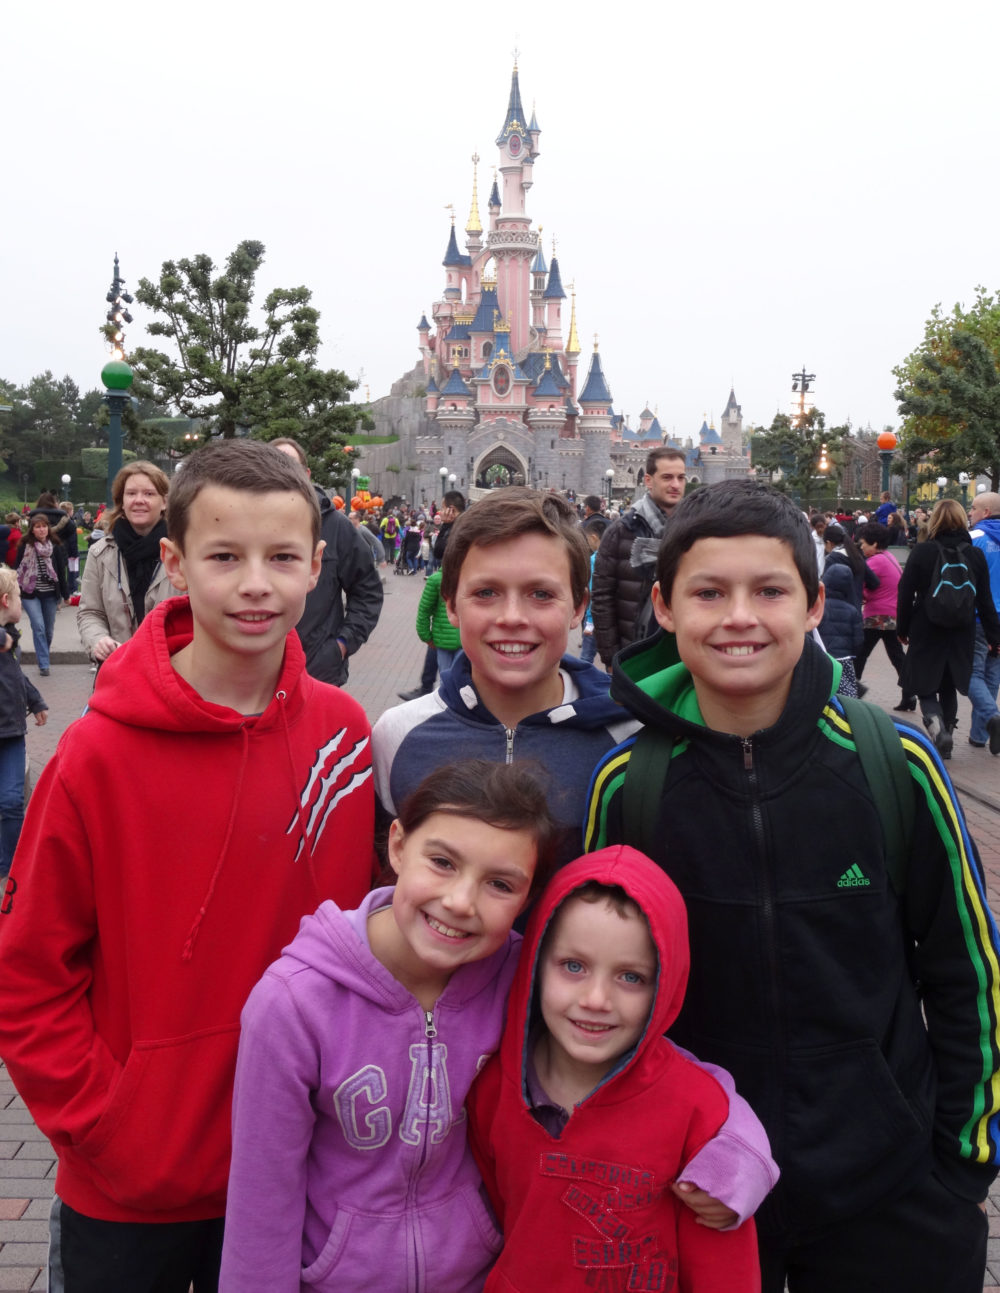 children outside Disneyland Paris